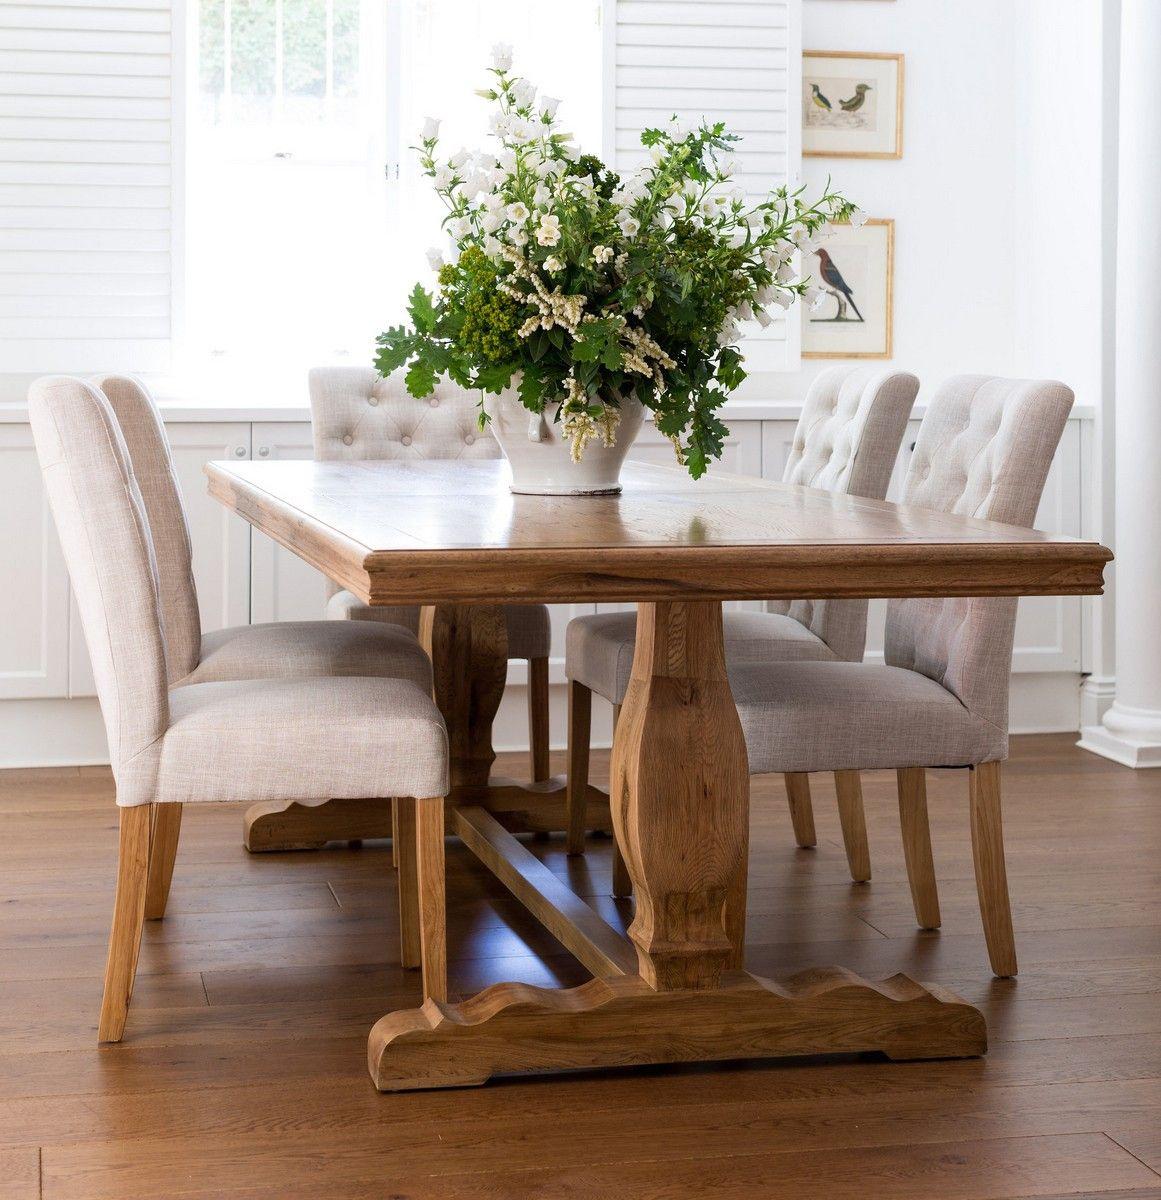 Comfortable White Padded Chairs And Wide Farmhouse Style Dining Impressive Farm Style Dining Room Table Design Ideas